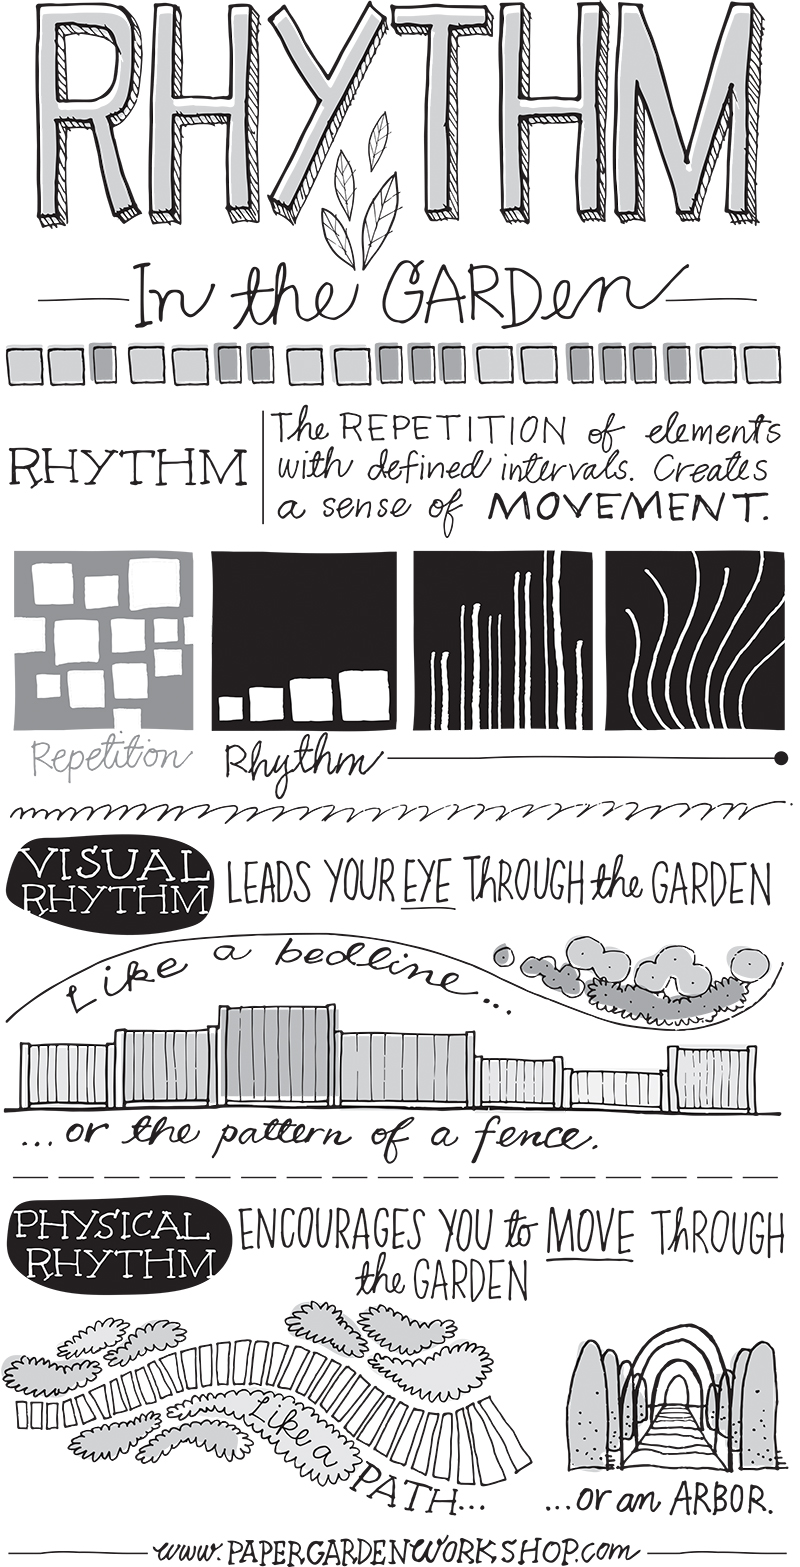 Rhythm in the Garden_Orgler.jpg